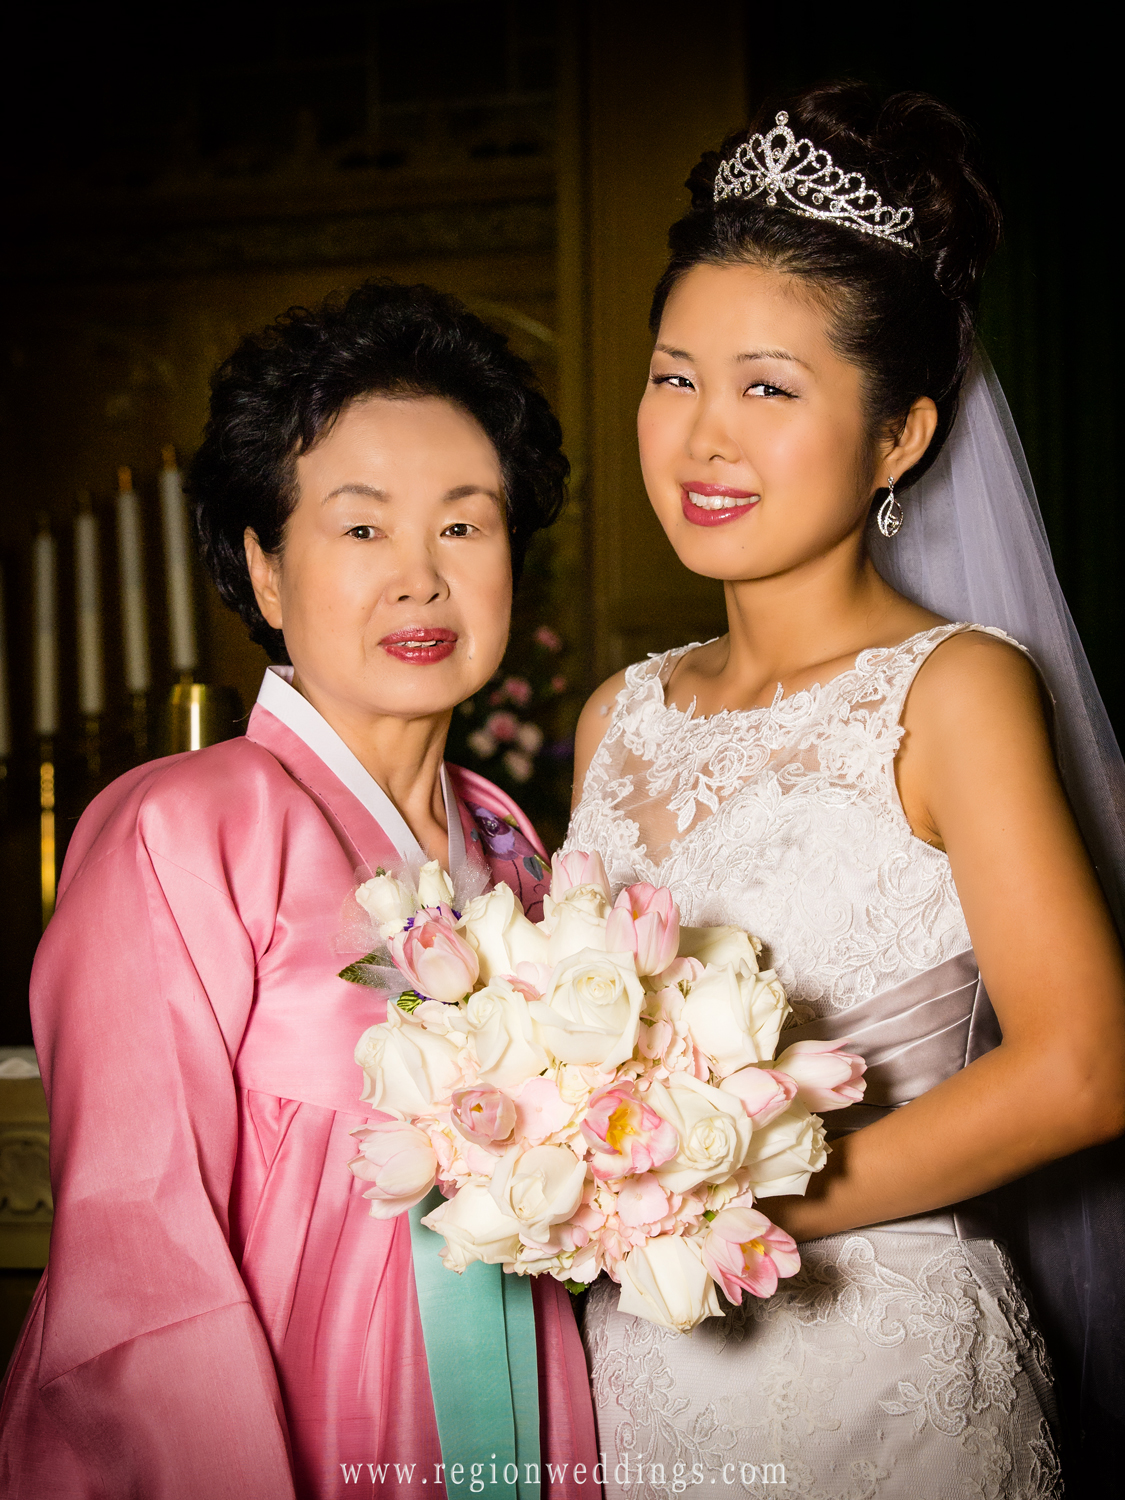 A Korean bride's mother poses with her daughter wearing traditional clothing for a wedding photo in Crown Point, Indiana.